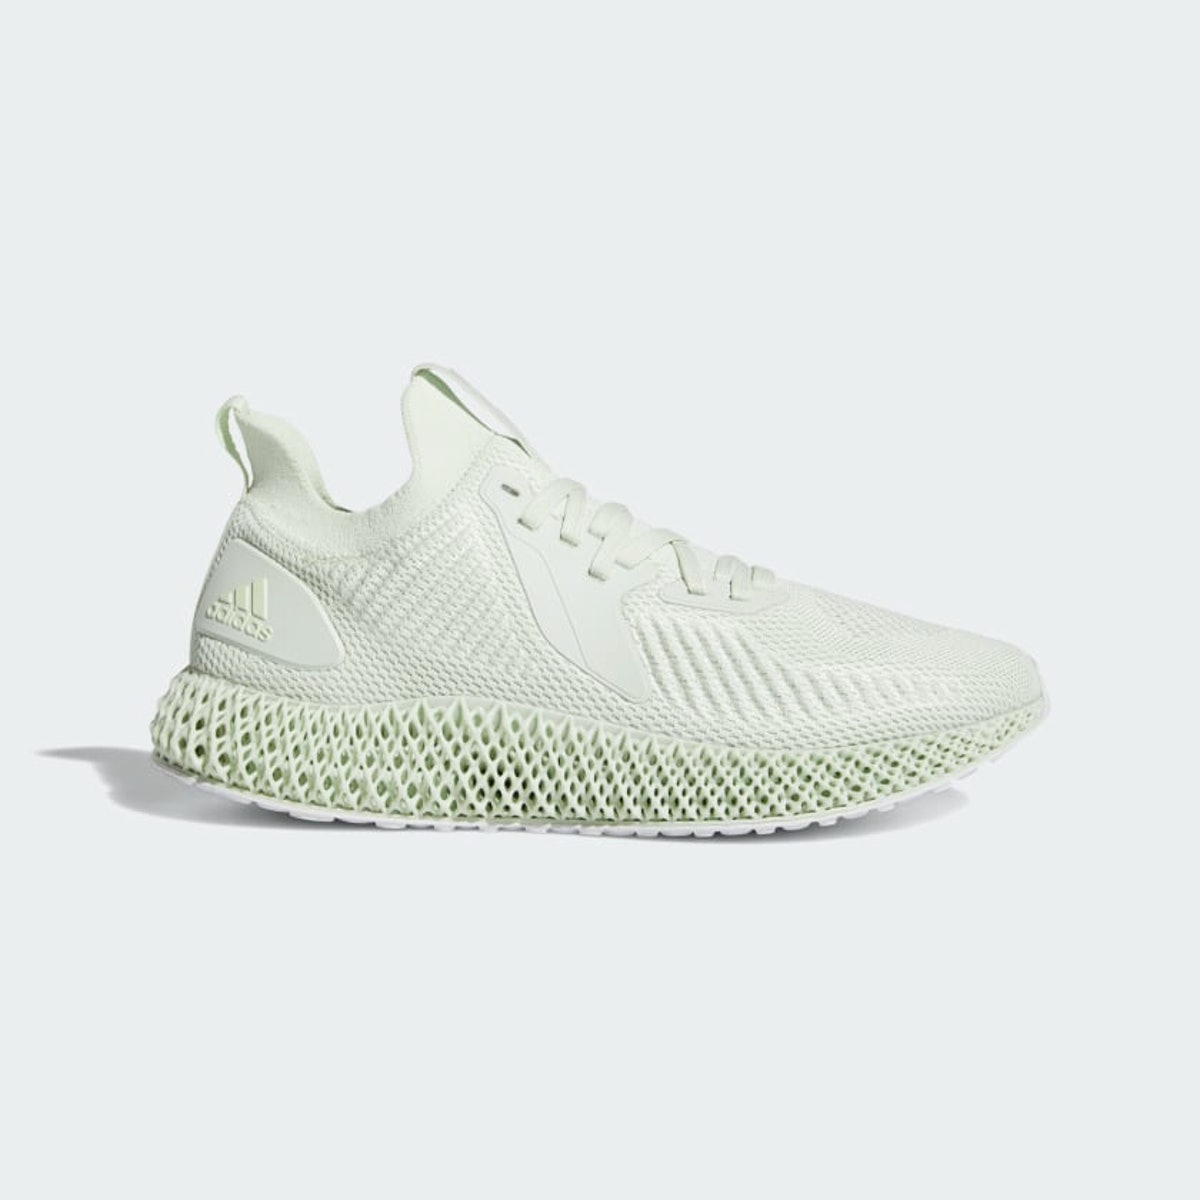 """Alphaedge 4D Parley Shoes in """"Aero Green"""""""